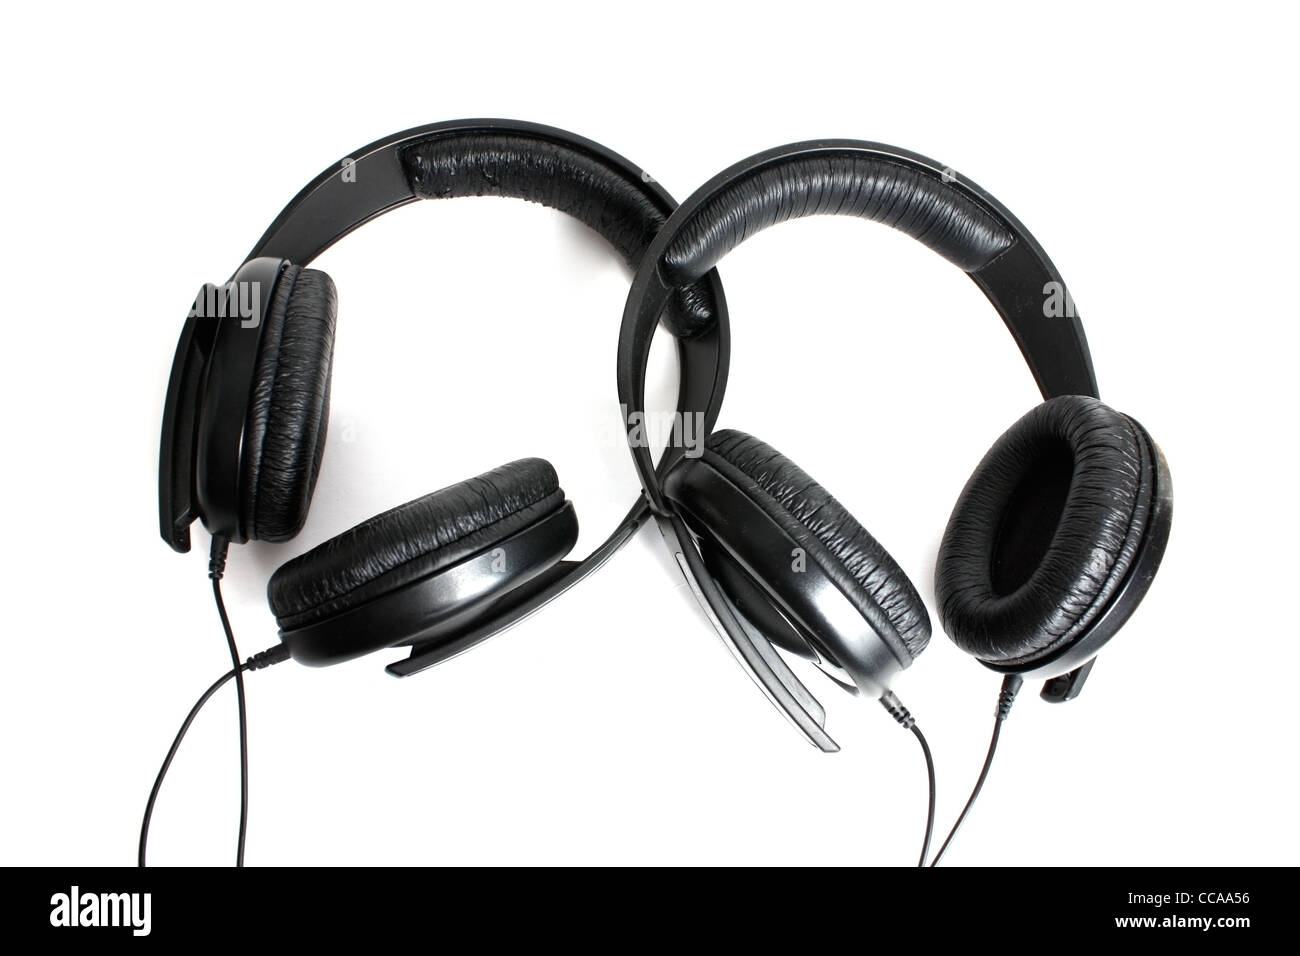 Two headphones isolated on a white background - Stock Image